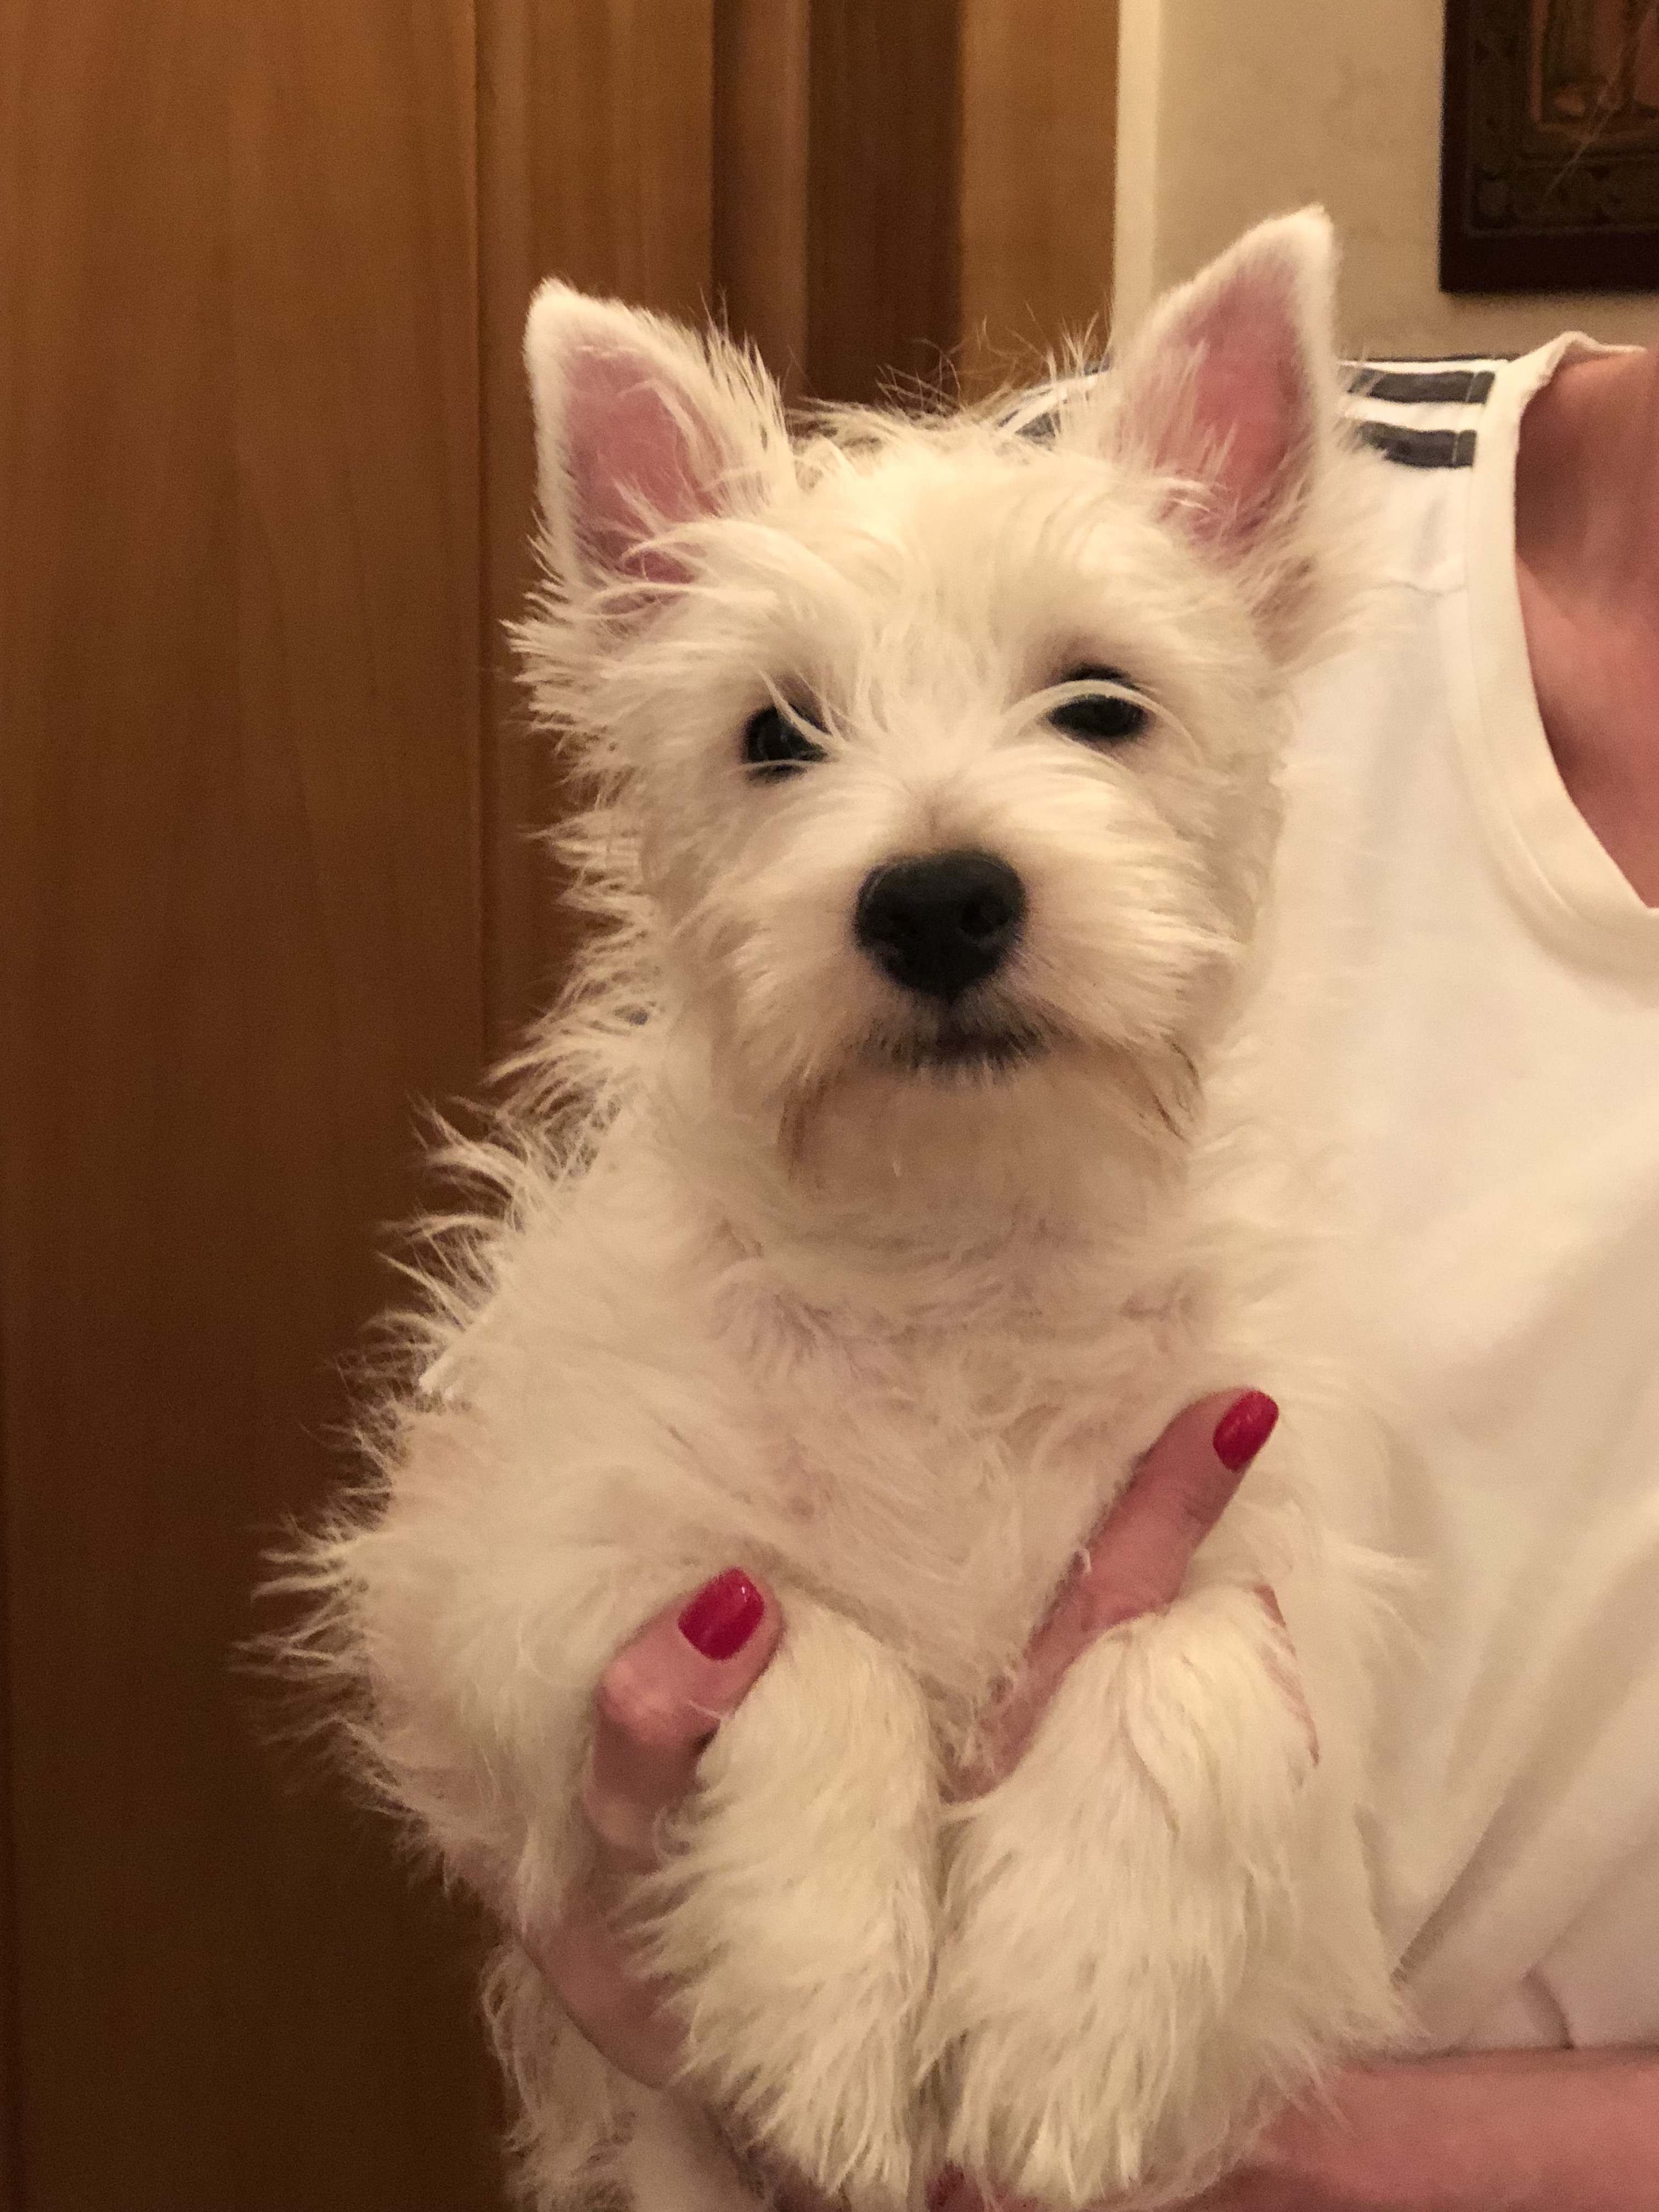 The West Highland White Terrier